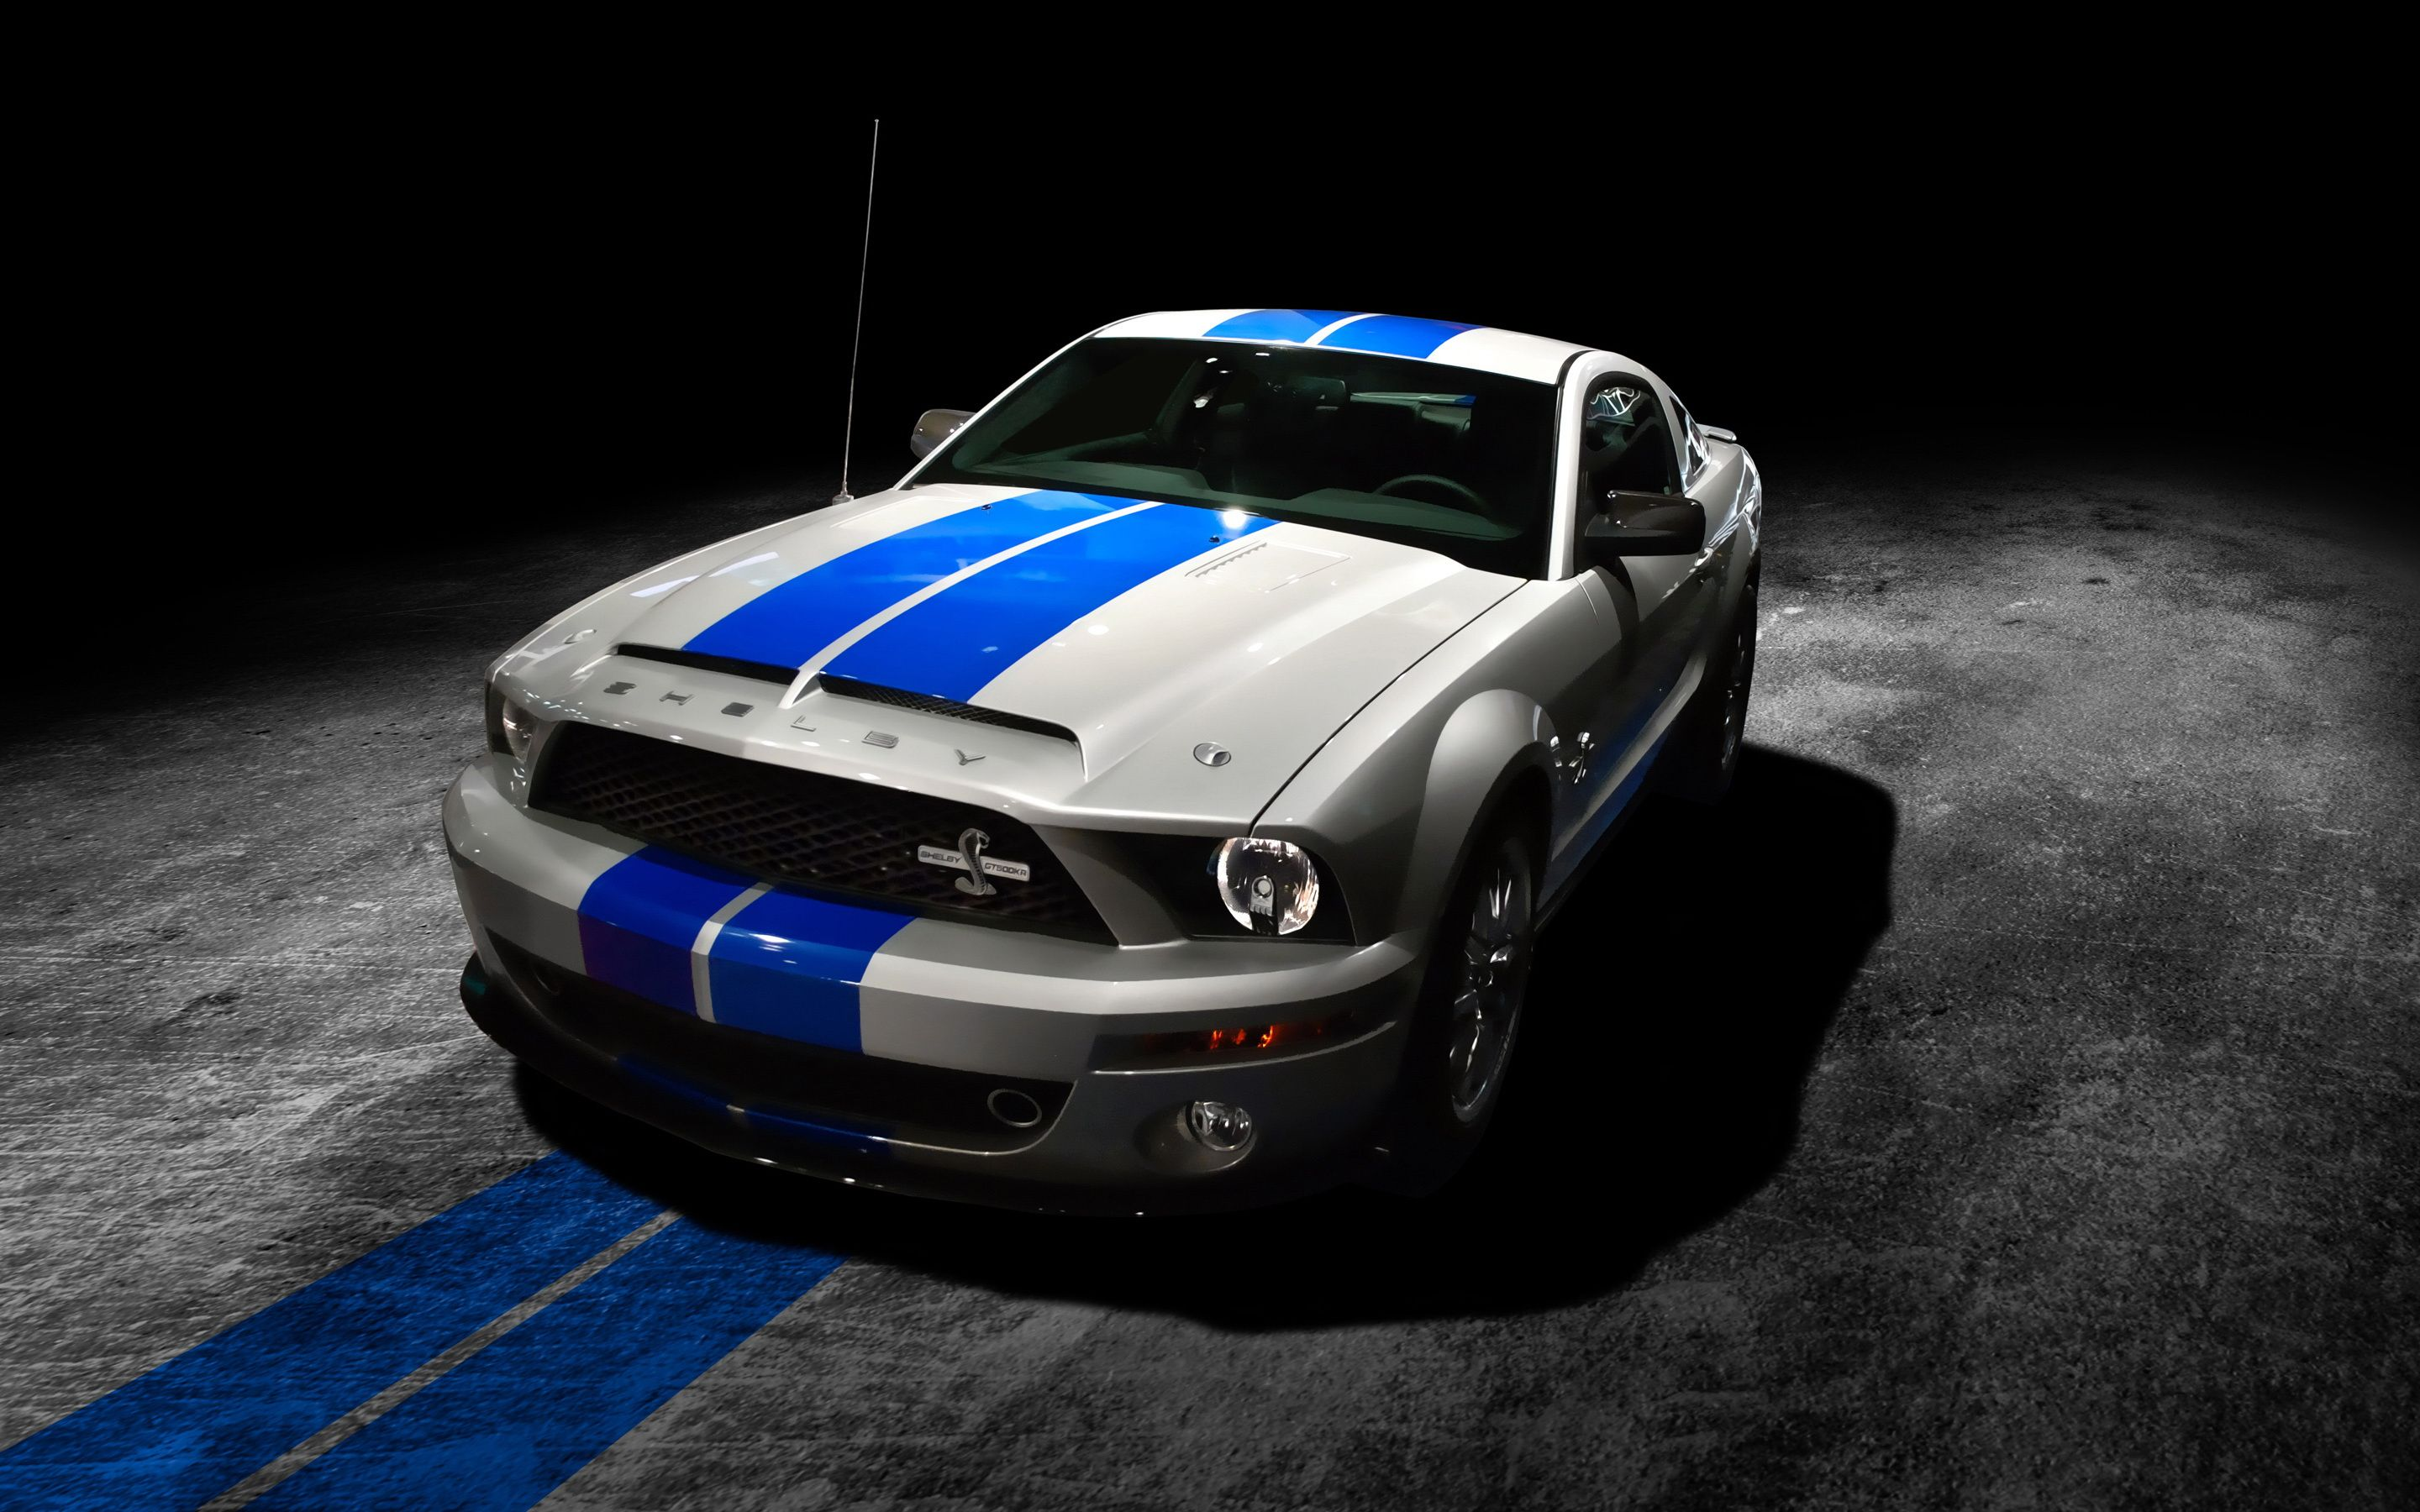 Ford Mustang Wallpapers Full HD 2880x1800